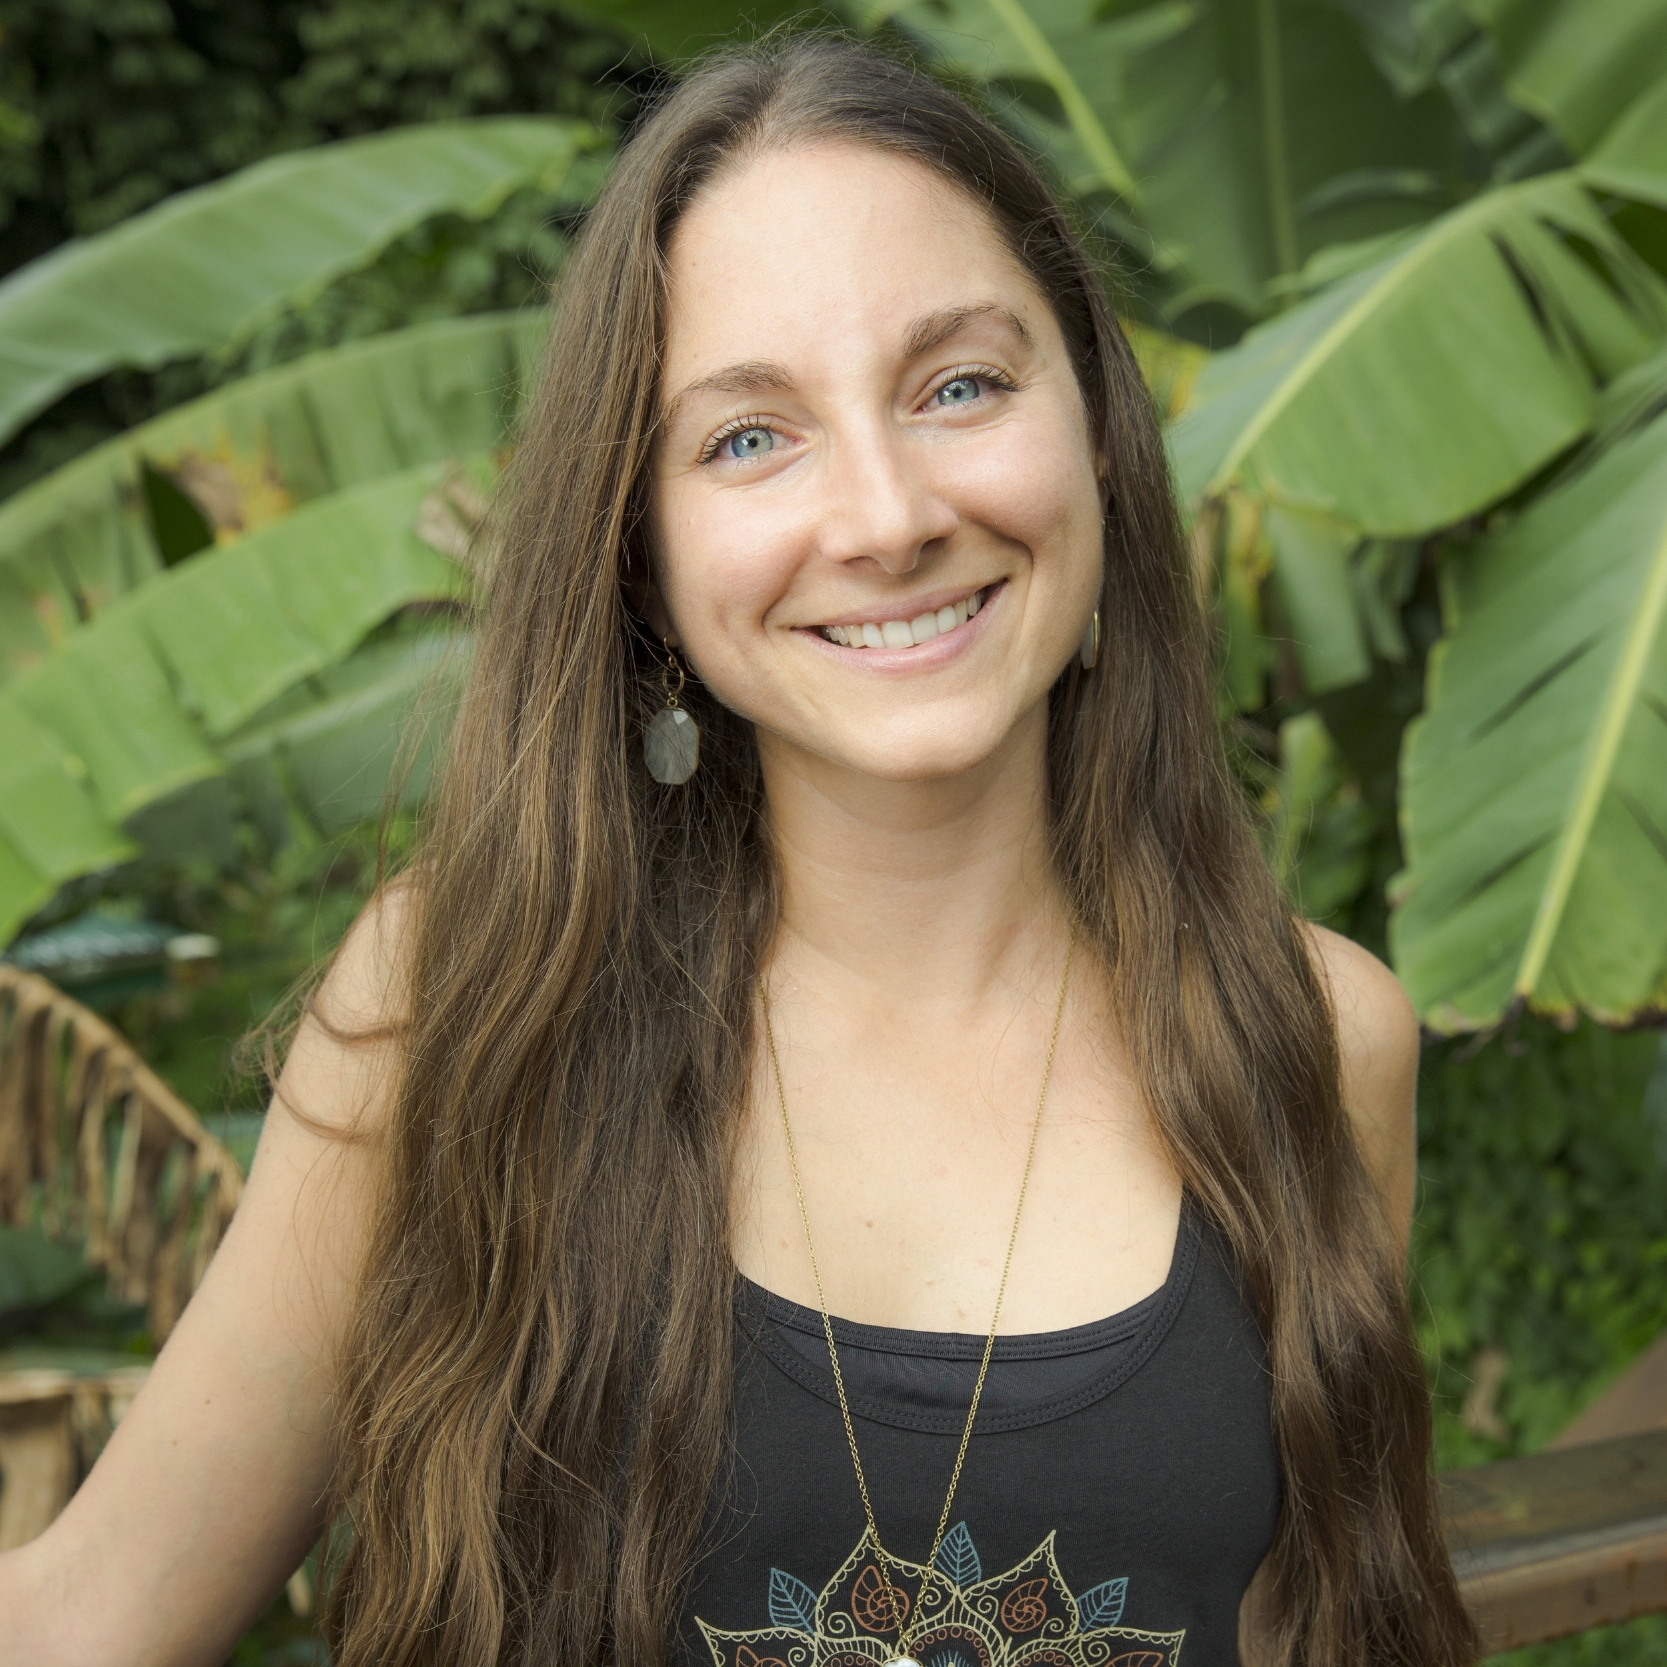 Jen Wyatt - Jen is a spiritual entrepreneur, nature lover, seeker, and lifelong learner committed to helping others on their journey of healing and self- discovery. She is a yoga and mindfulness instructor, reiki II practitioner, artist, and owner of Wander Free Wellness.